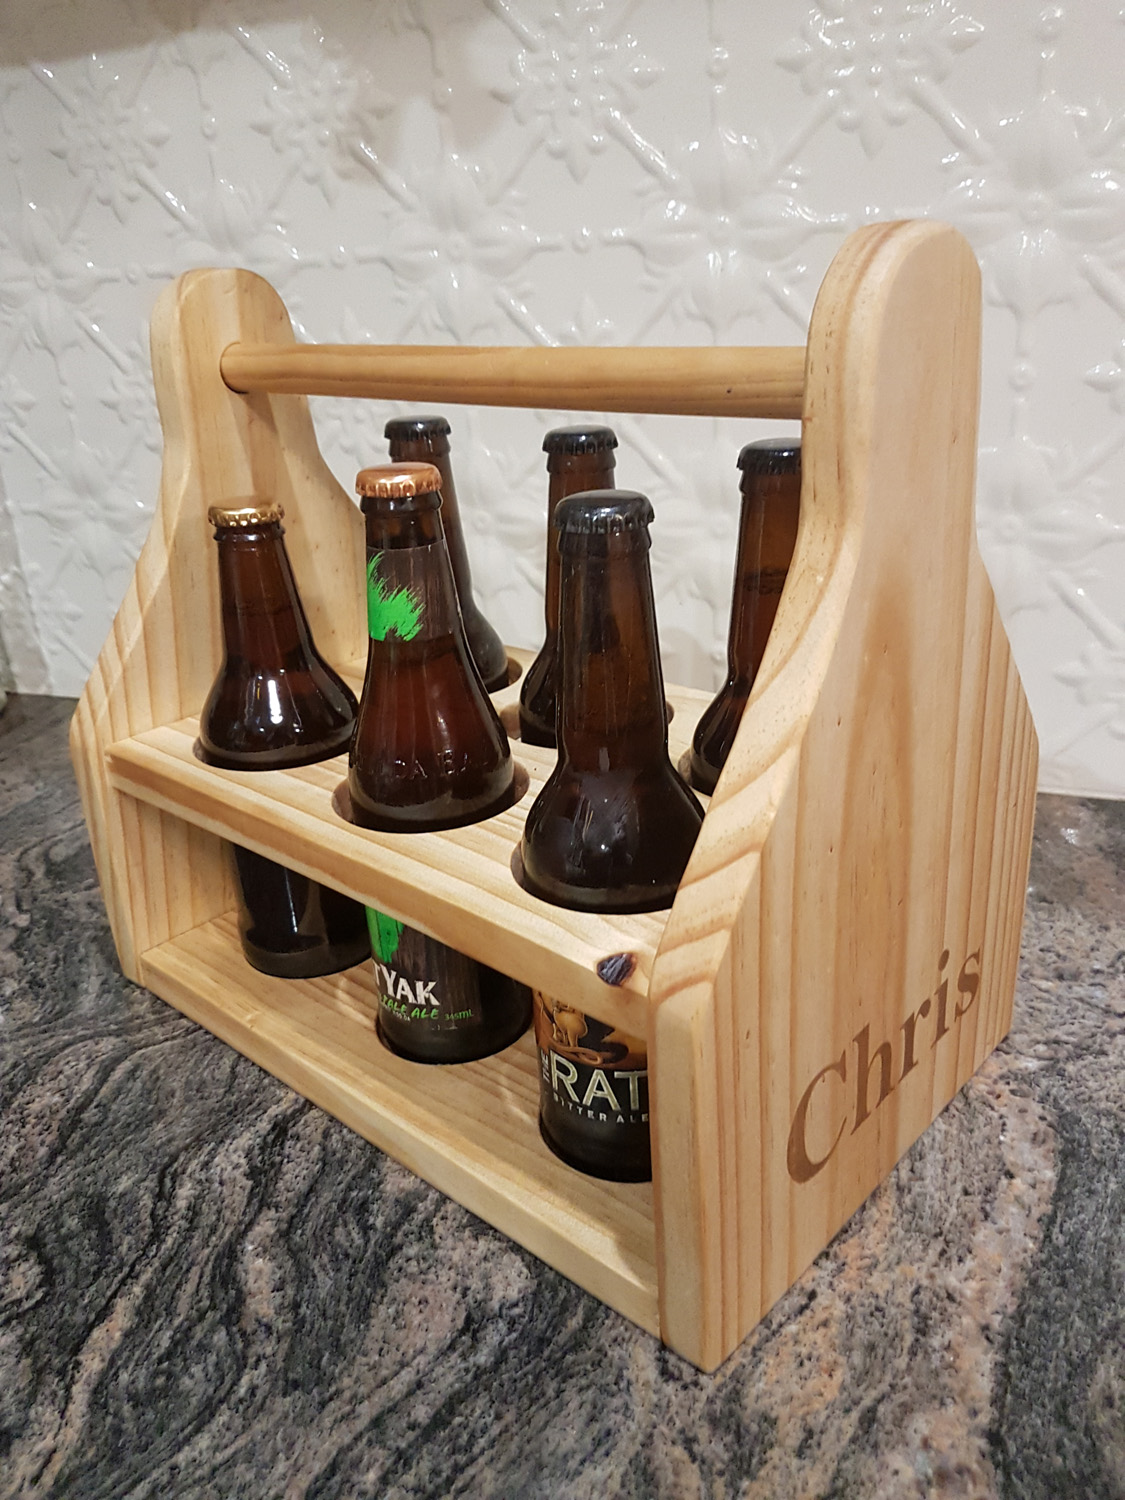 Timber beer caddy - Personalised with laser engraving